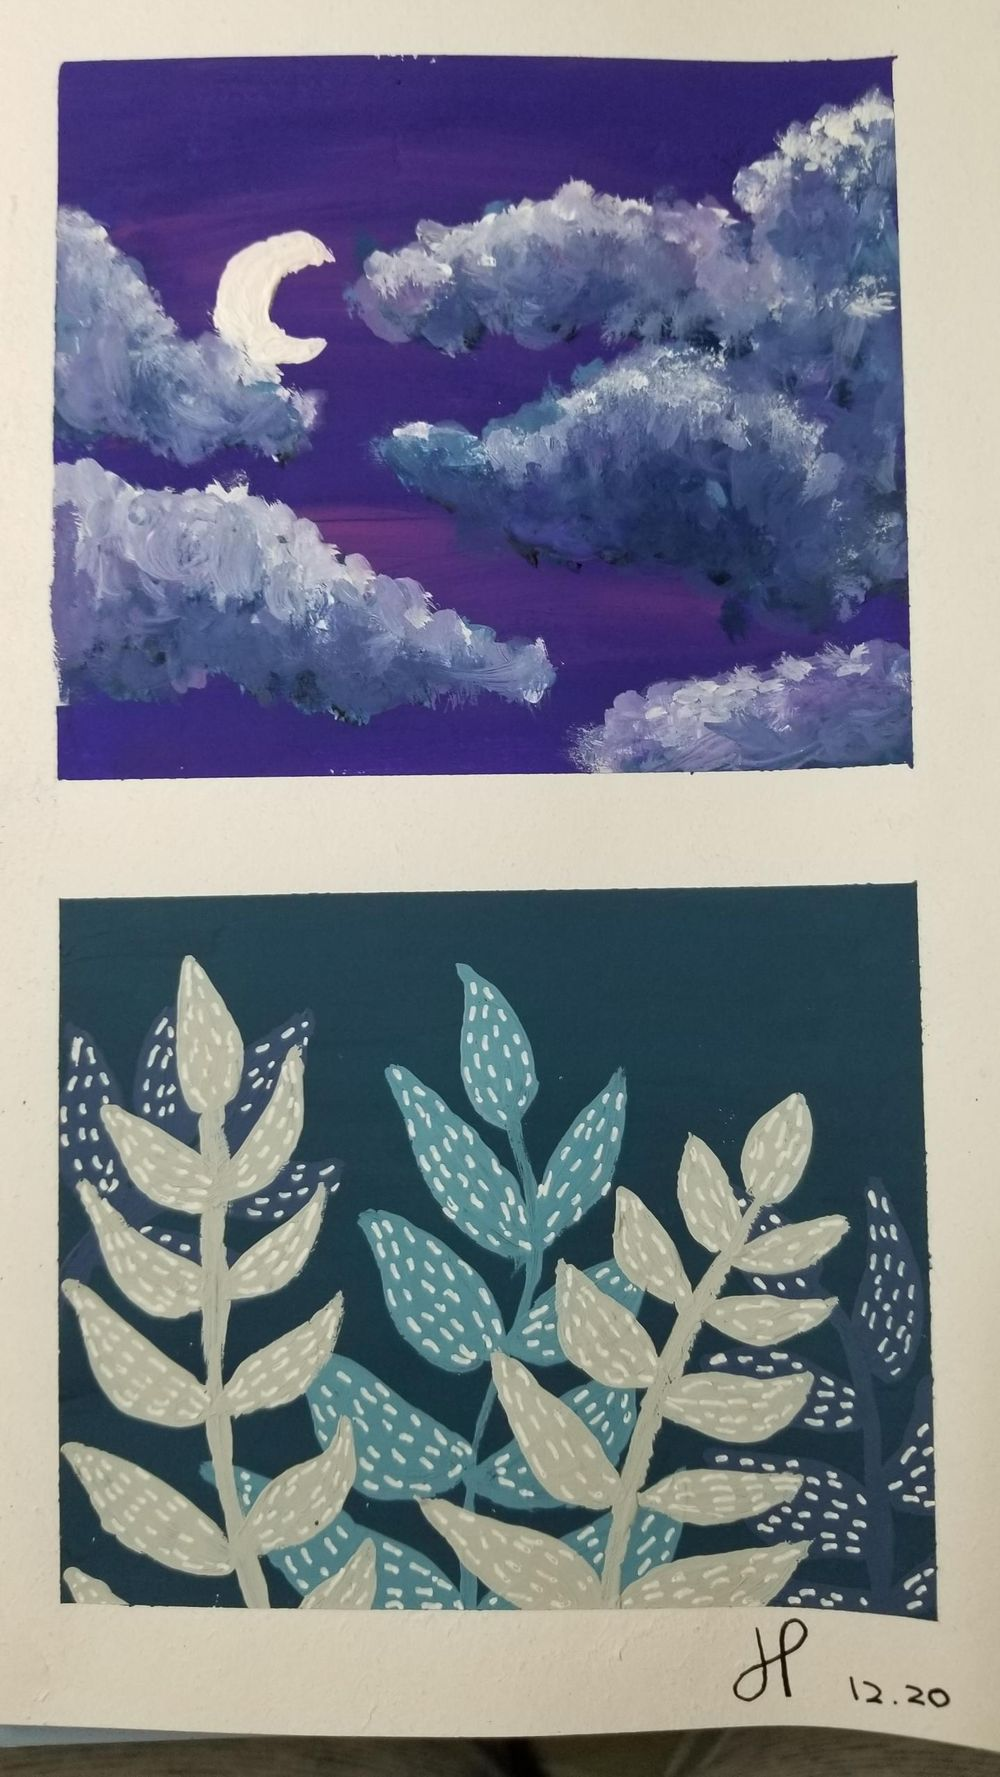 Janet P. - image 1 - student project